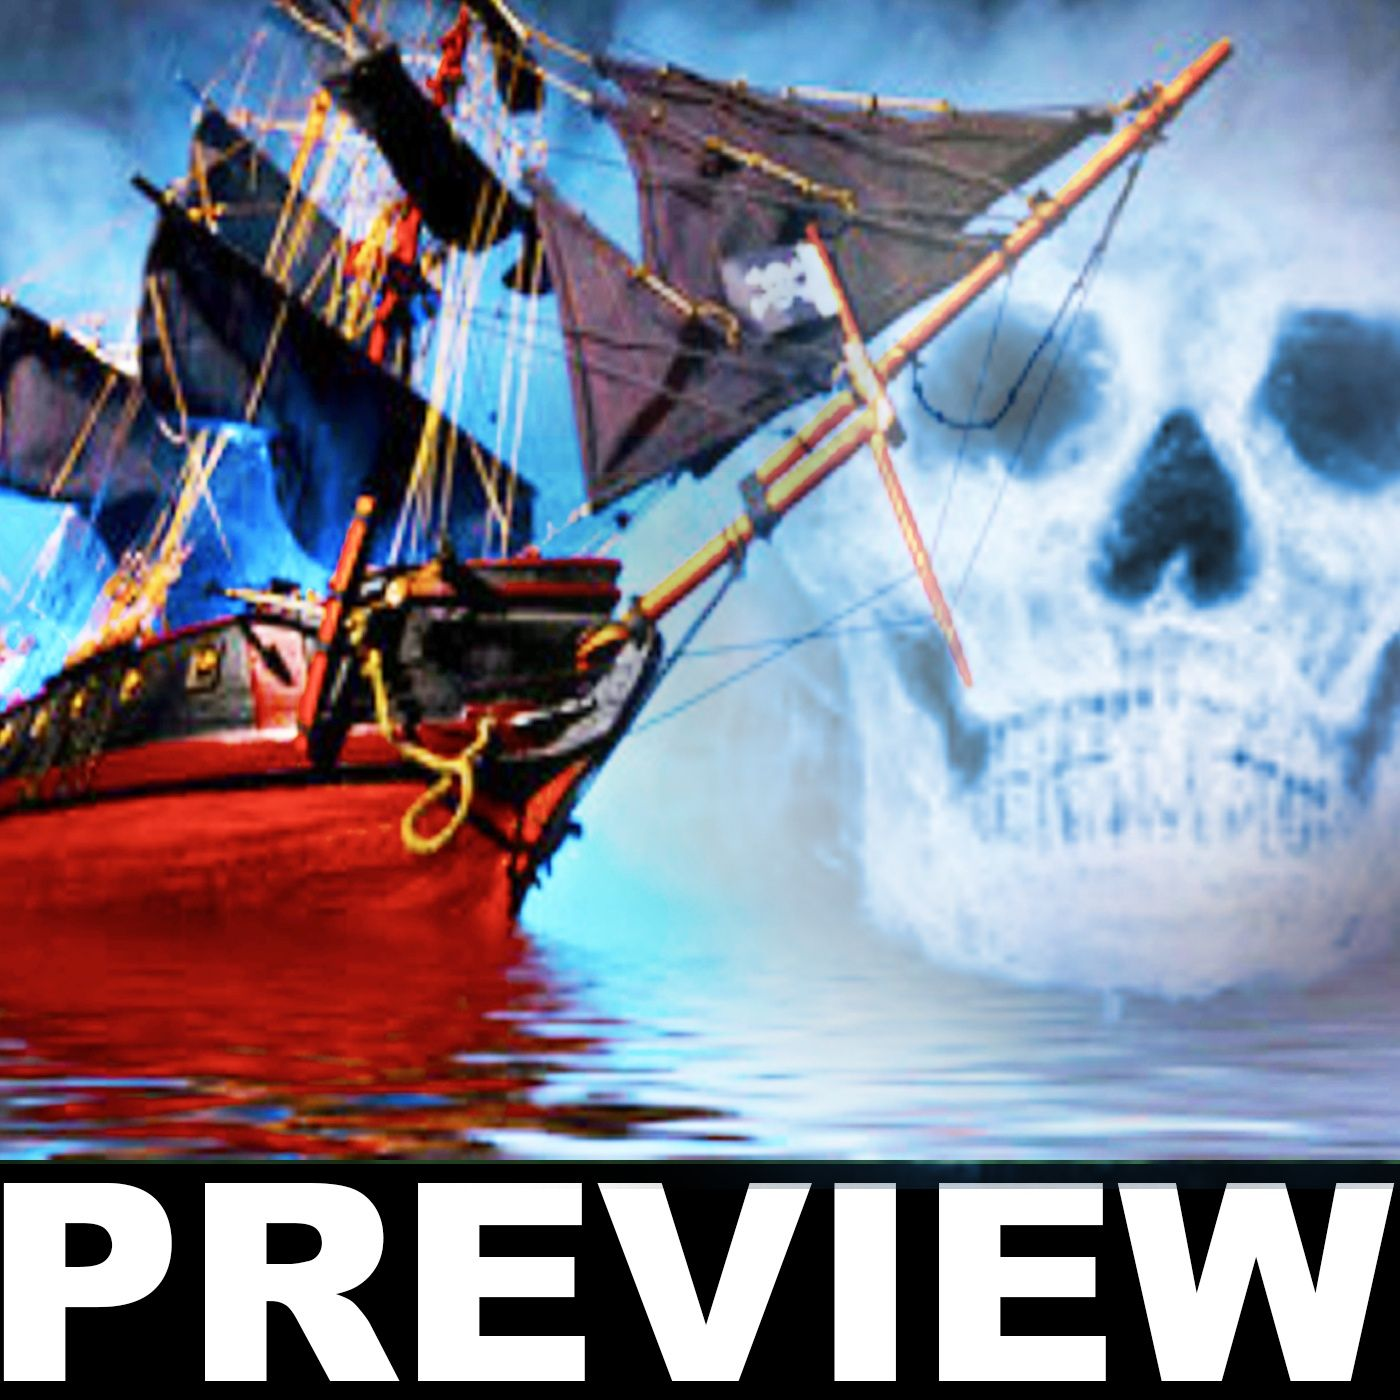 THE GHOST SHIP that was a secret for over a century (PREVIEW)